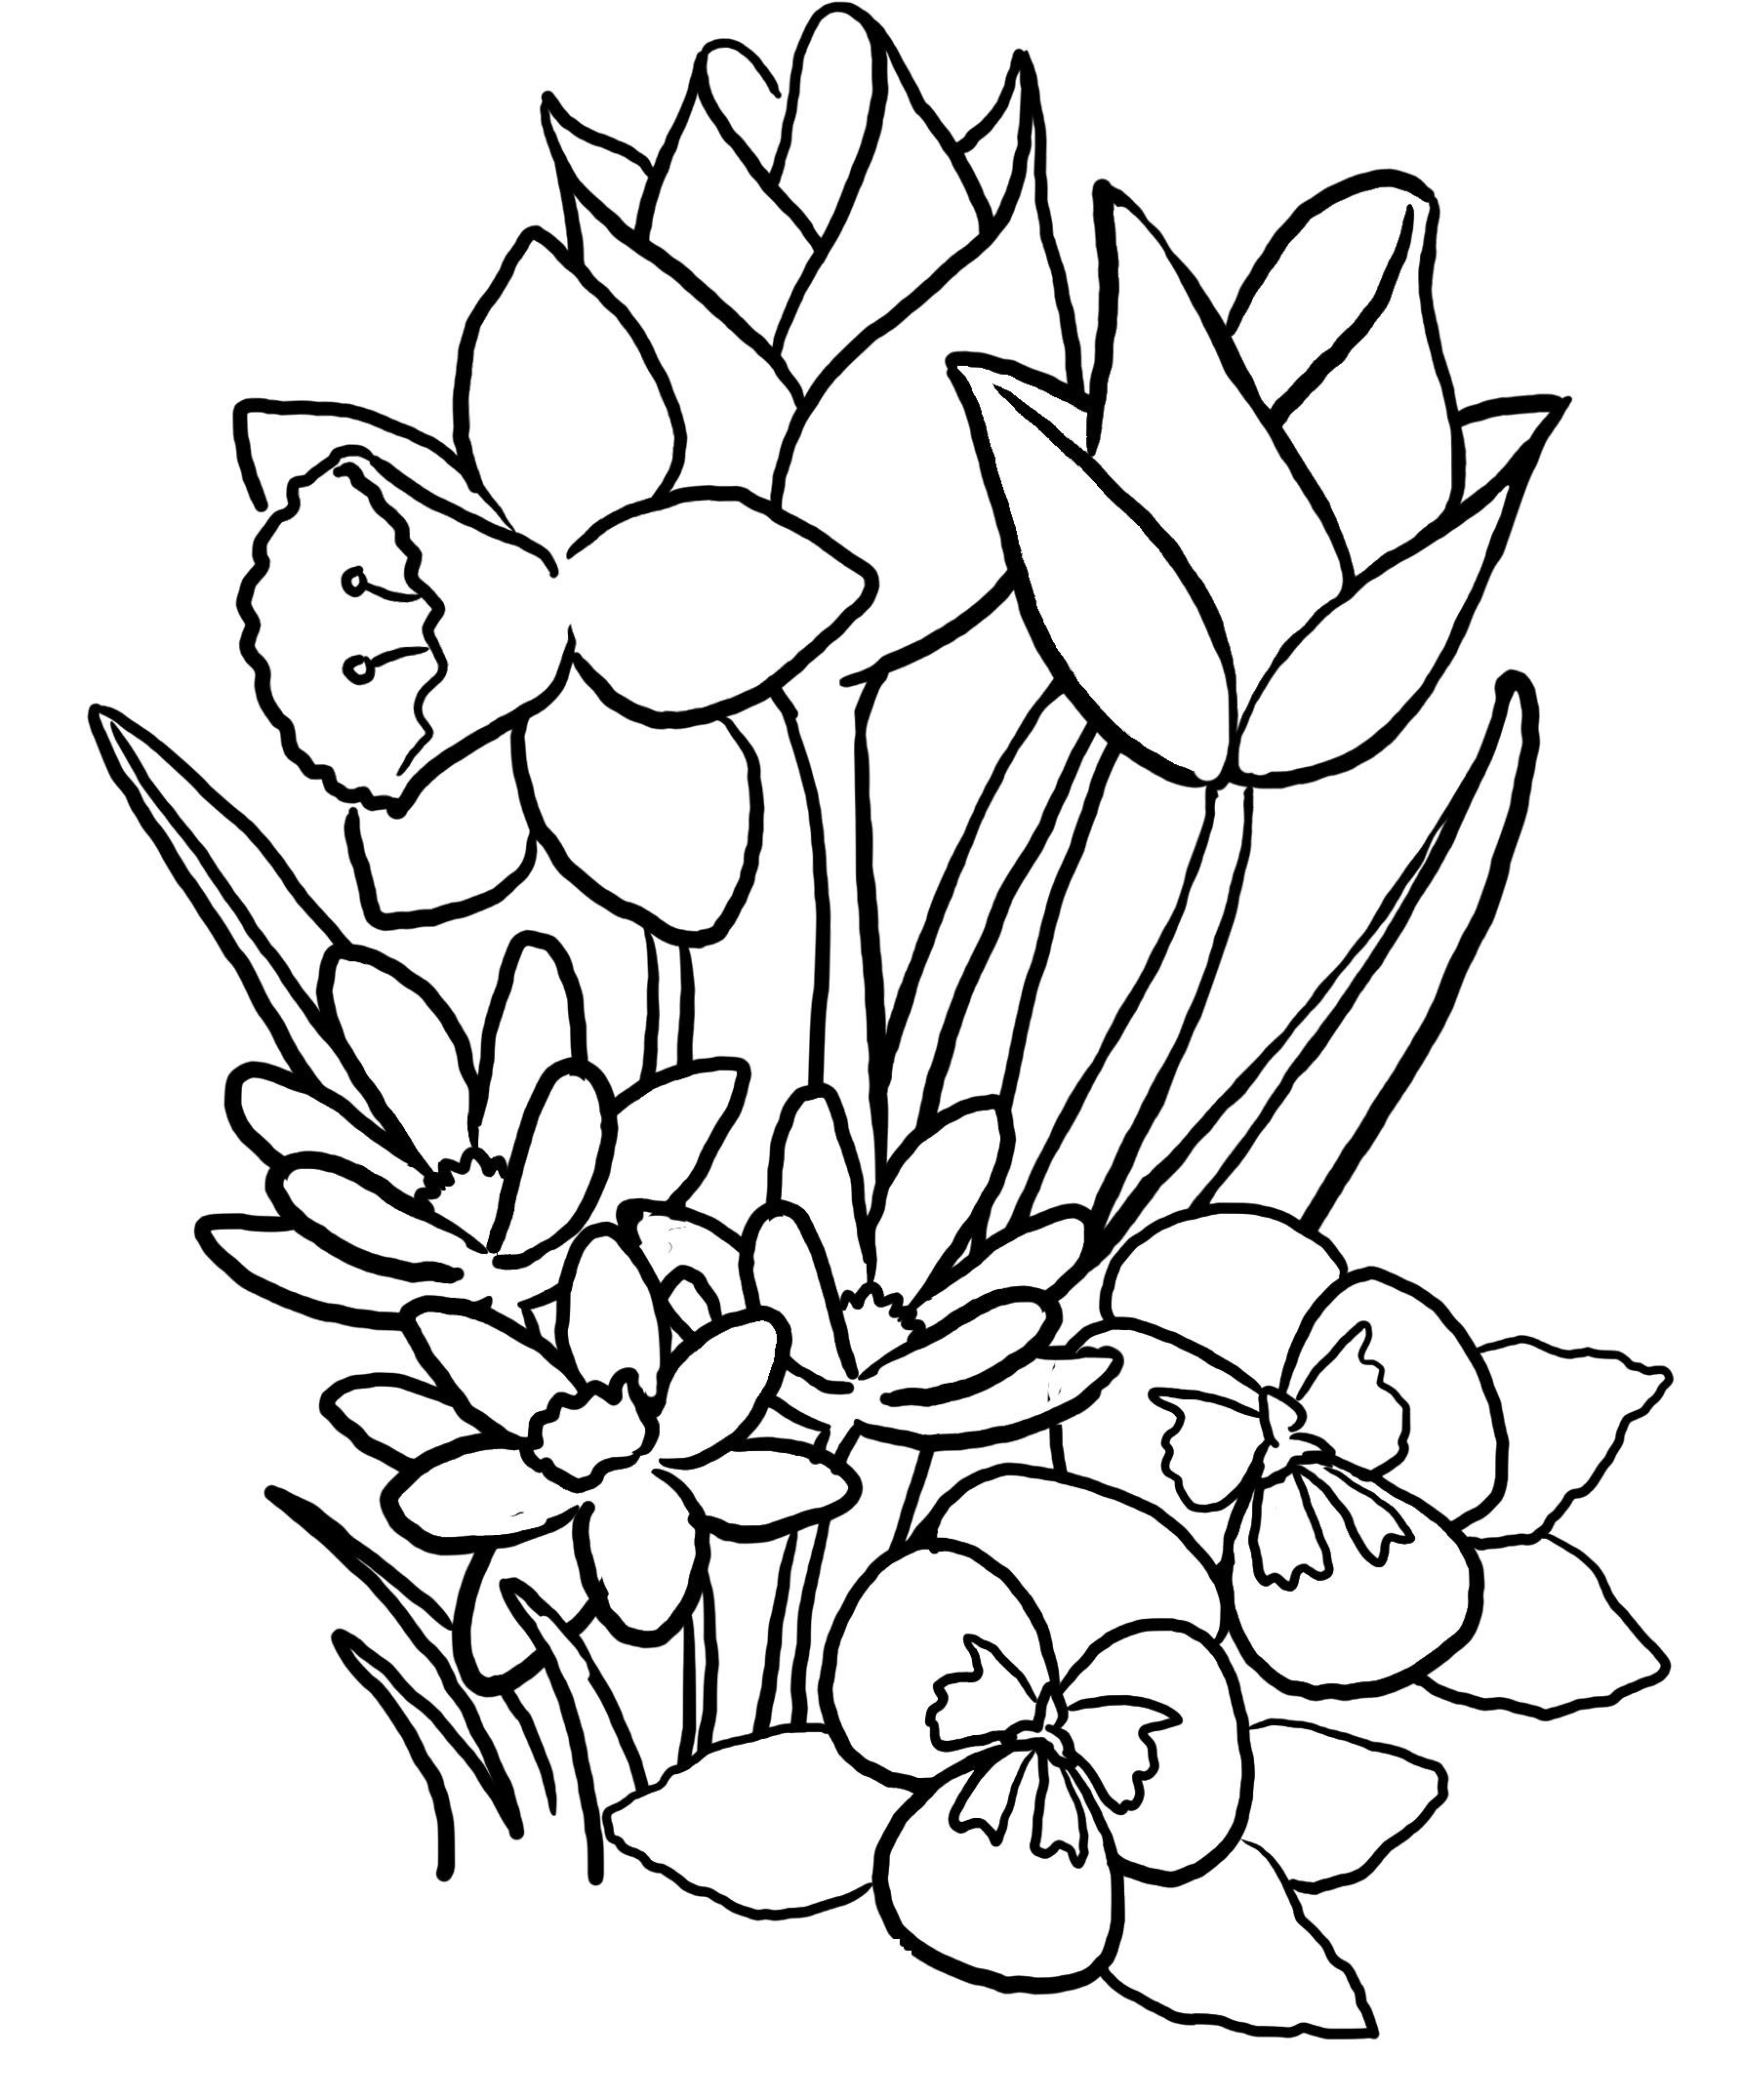 tulip coloring pictures tulip flower coloring pages at getdrawings free download pictures coloring tulip 1 1